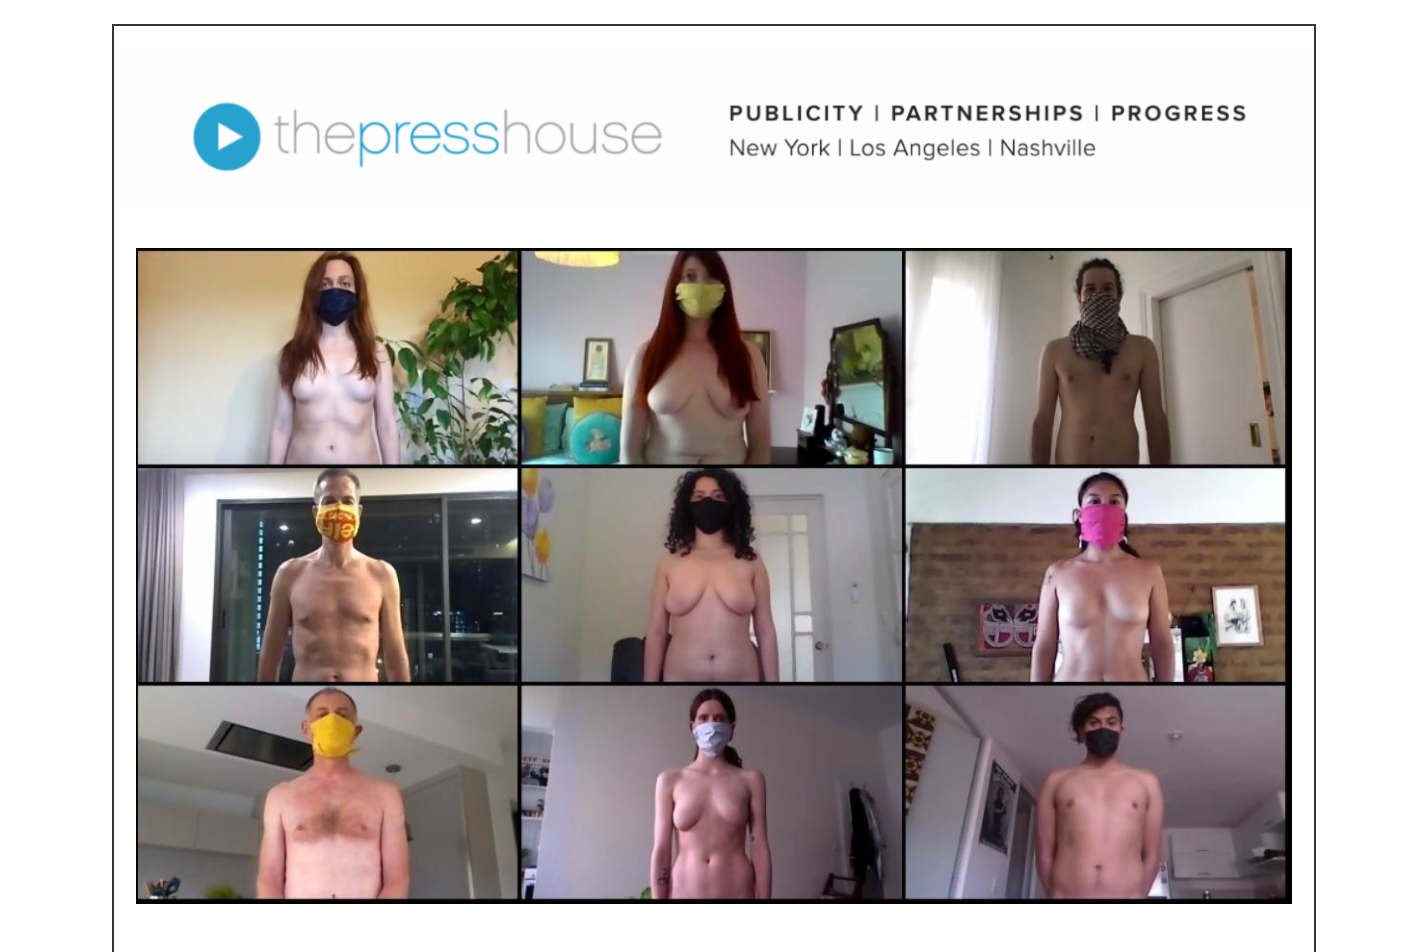 Nudity Pertaining to Photography: Is It Really Necessary? (NSFW)